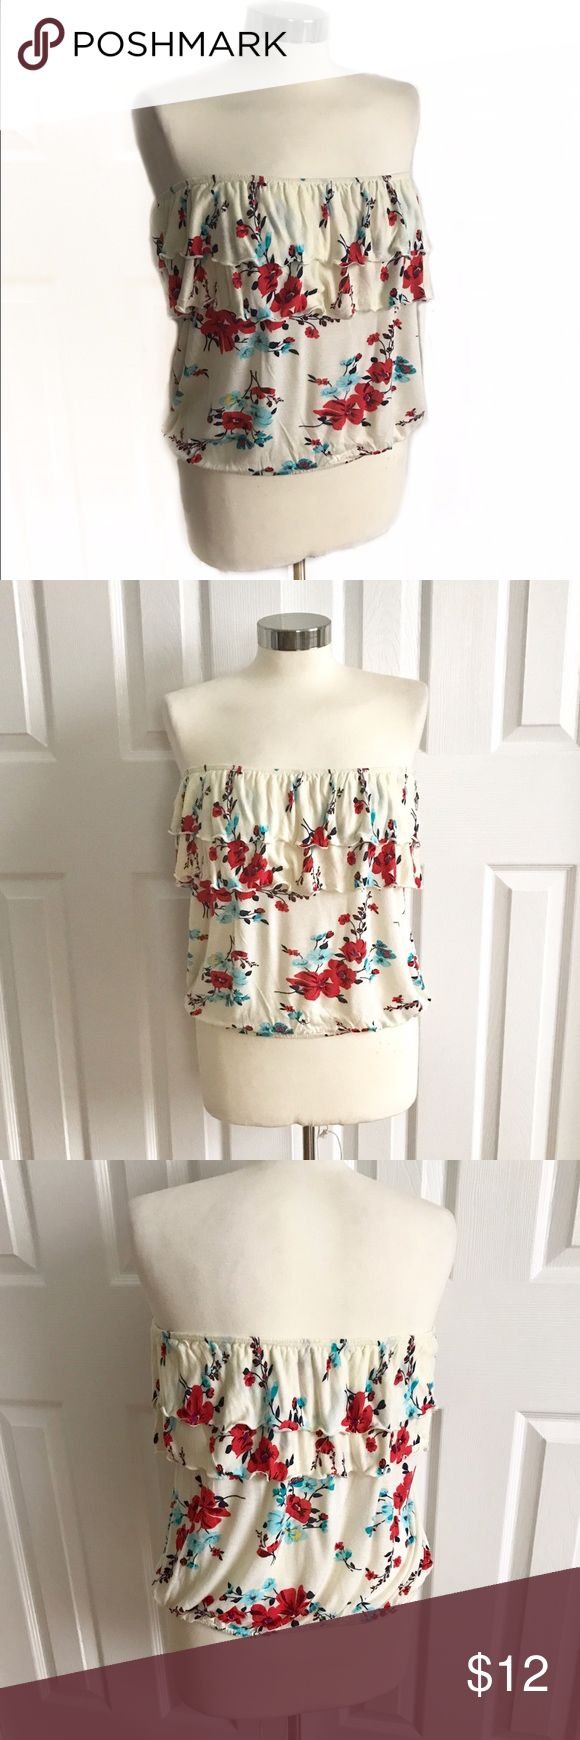 Full Tillt Strapless Cream Floral Shirt Strapless bandeau top with ruffle accent on top, off-white cream with red blue and some yellow floral design. Full Tilt size medium. Full Tilt Tops